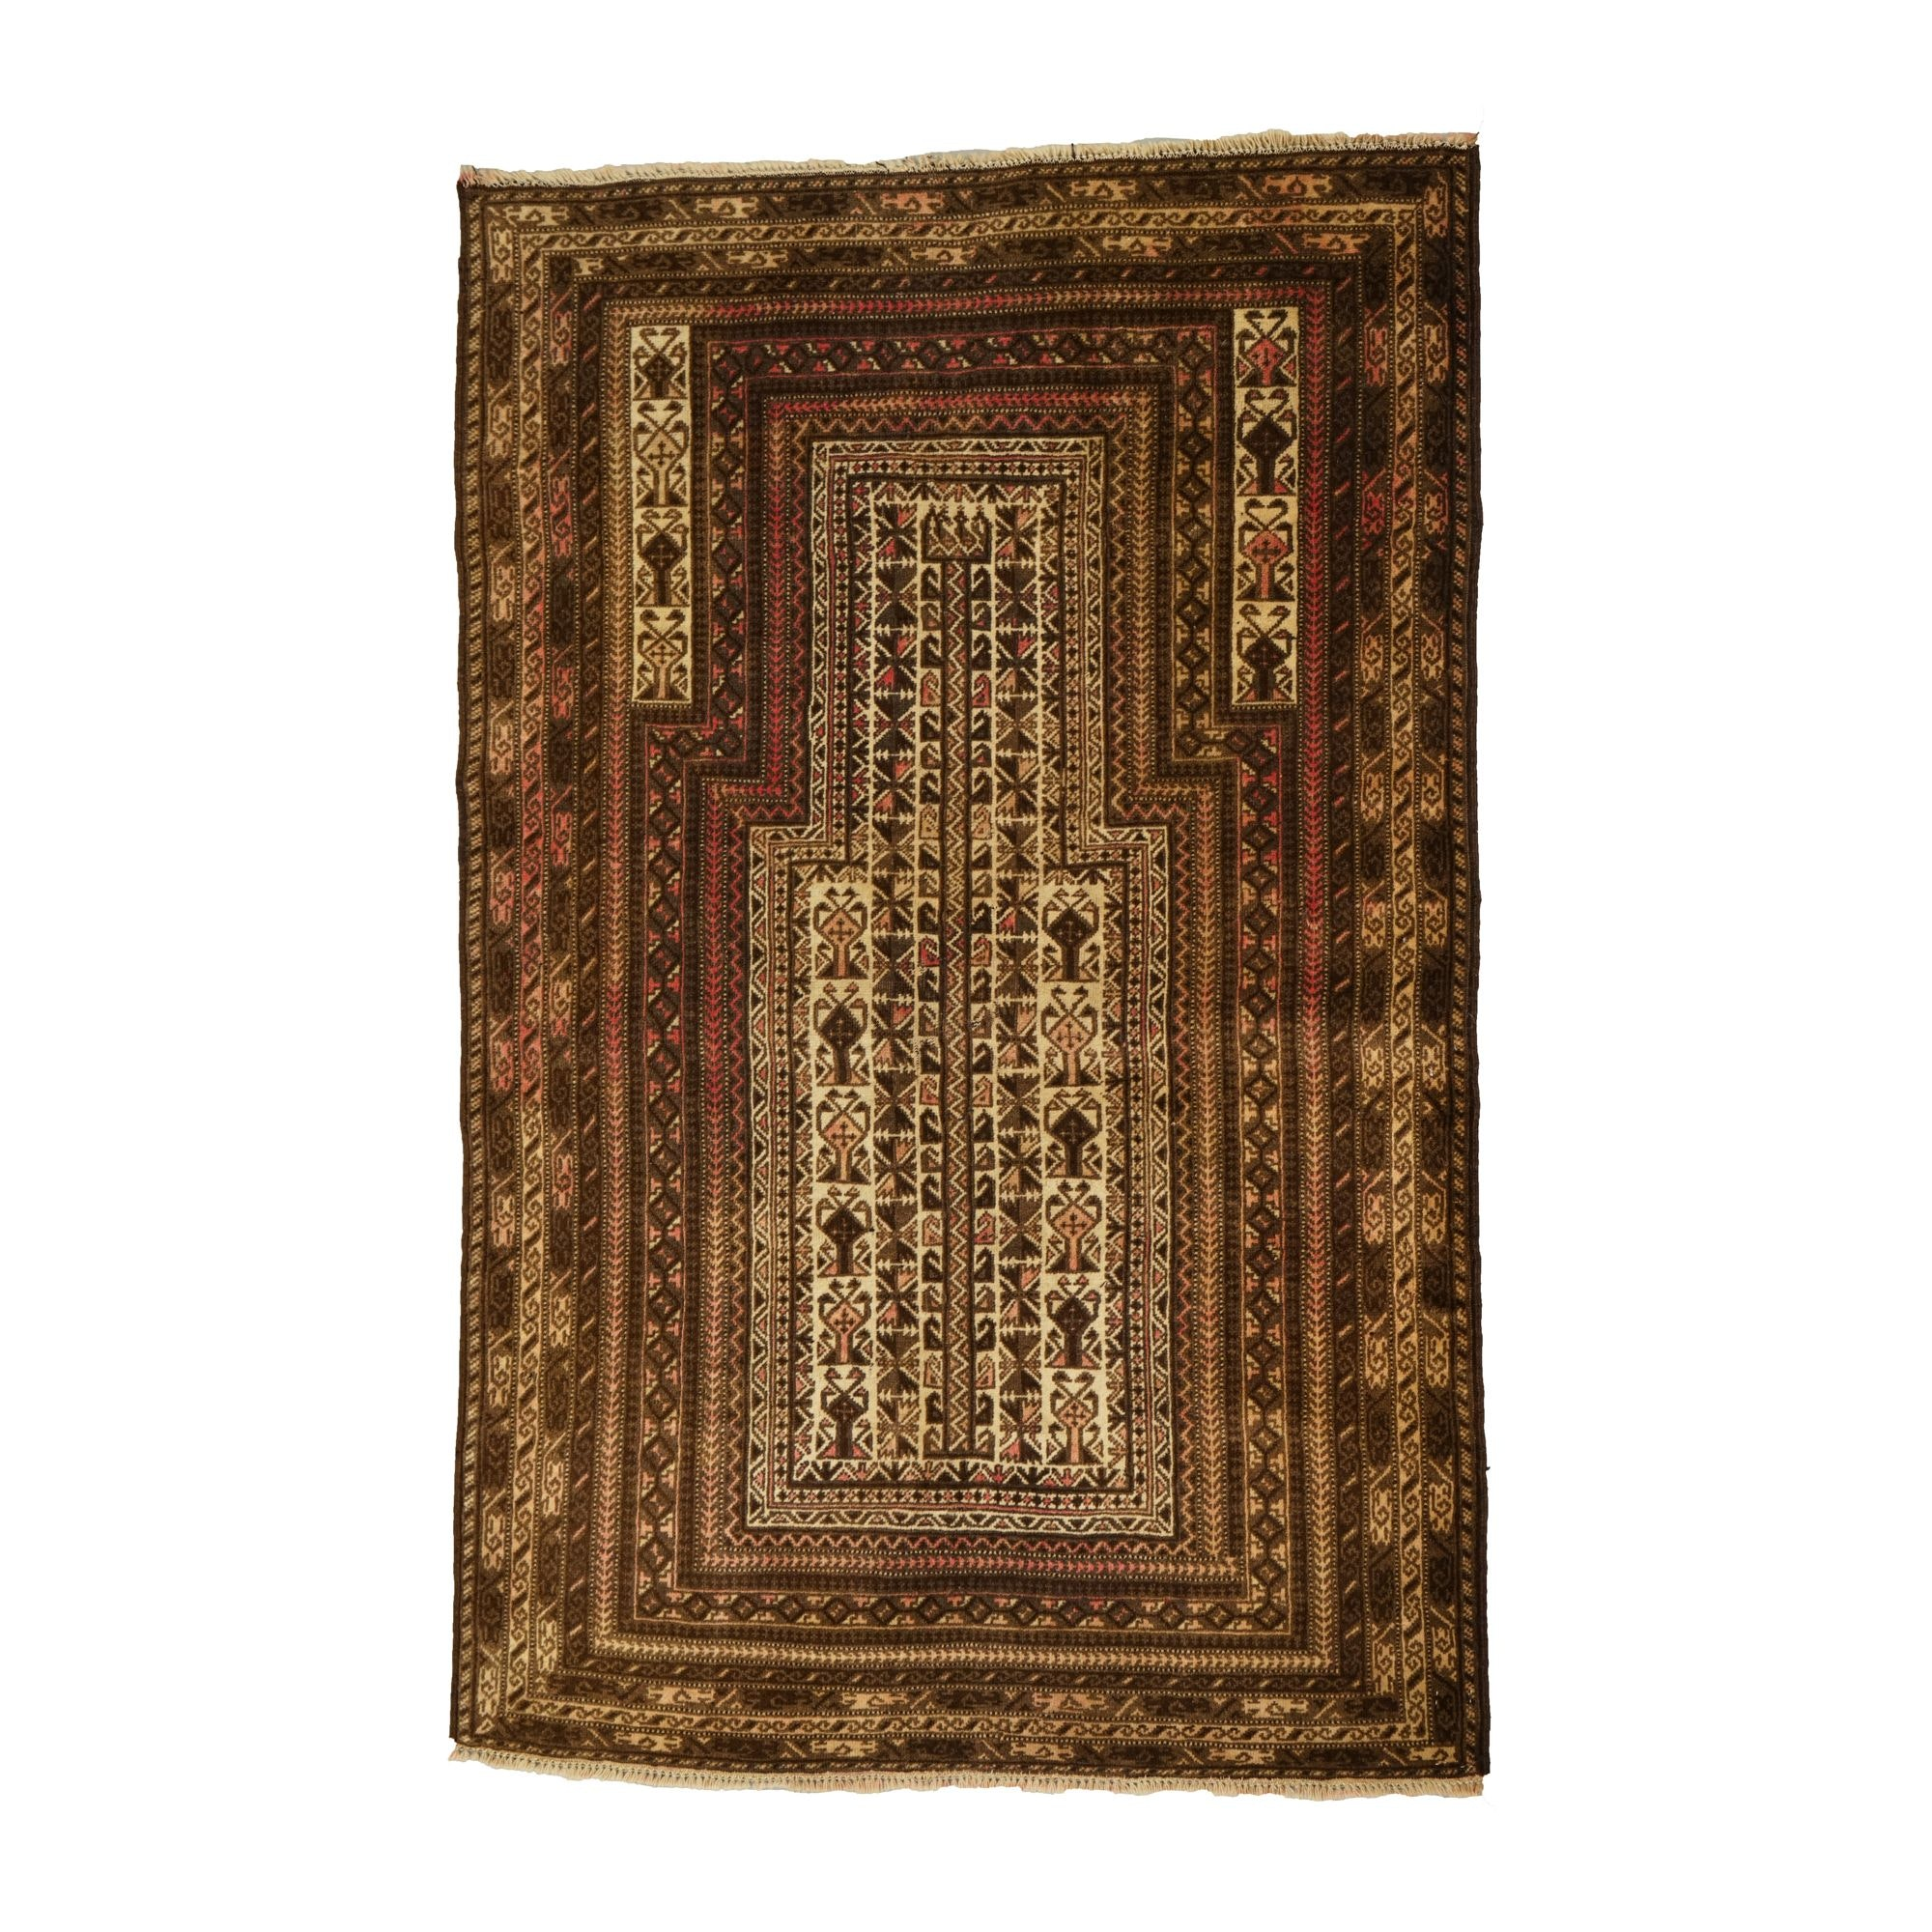 Finely Hand-Knotted Turkish Wool Prayer Rug